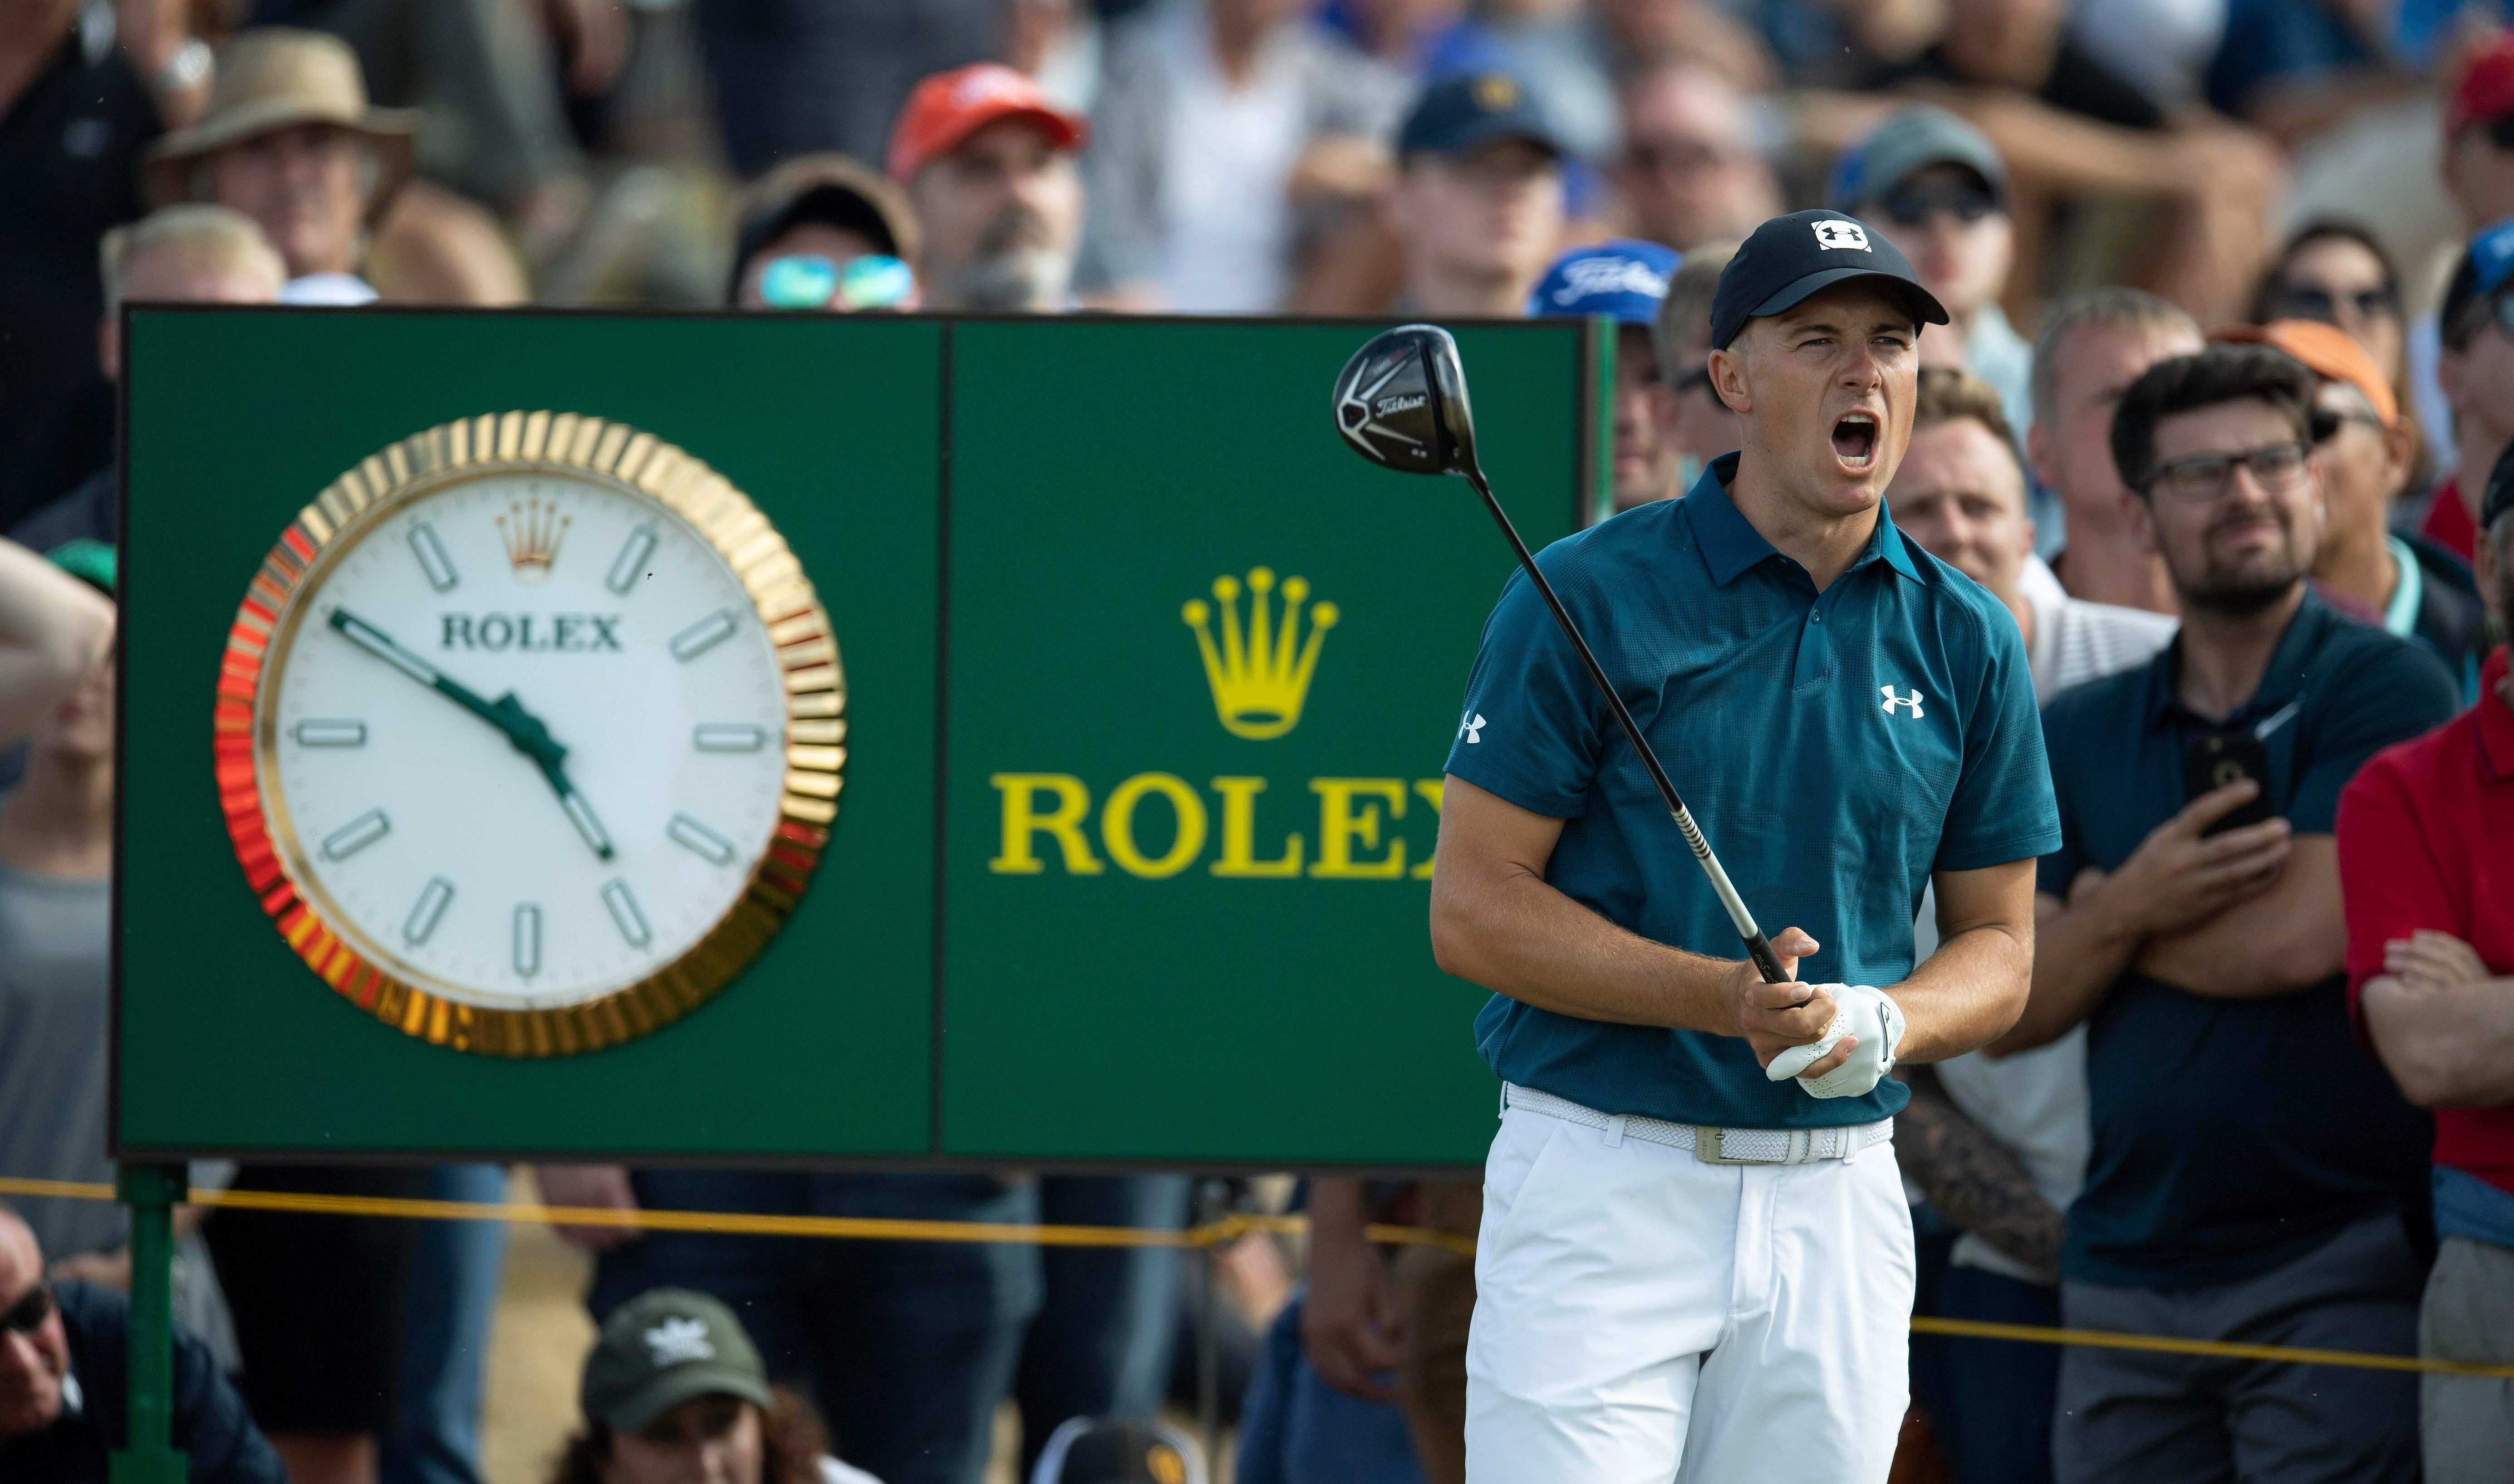 Jordan Spieth could become the first player to defend the Open title after Padraig Harrington in 2008